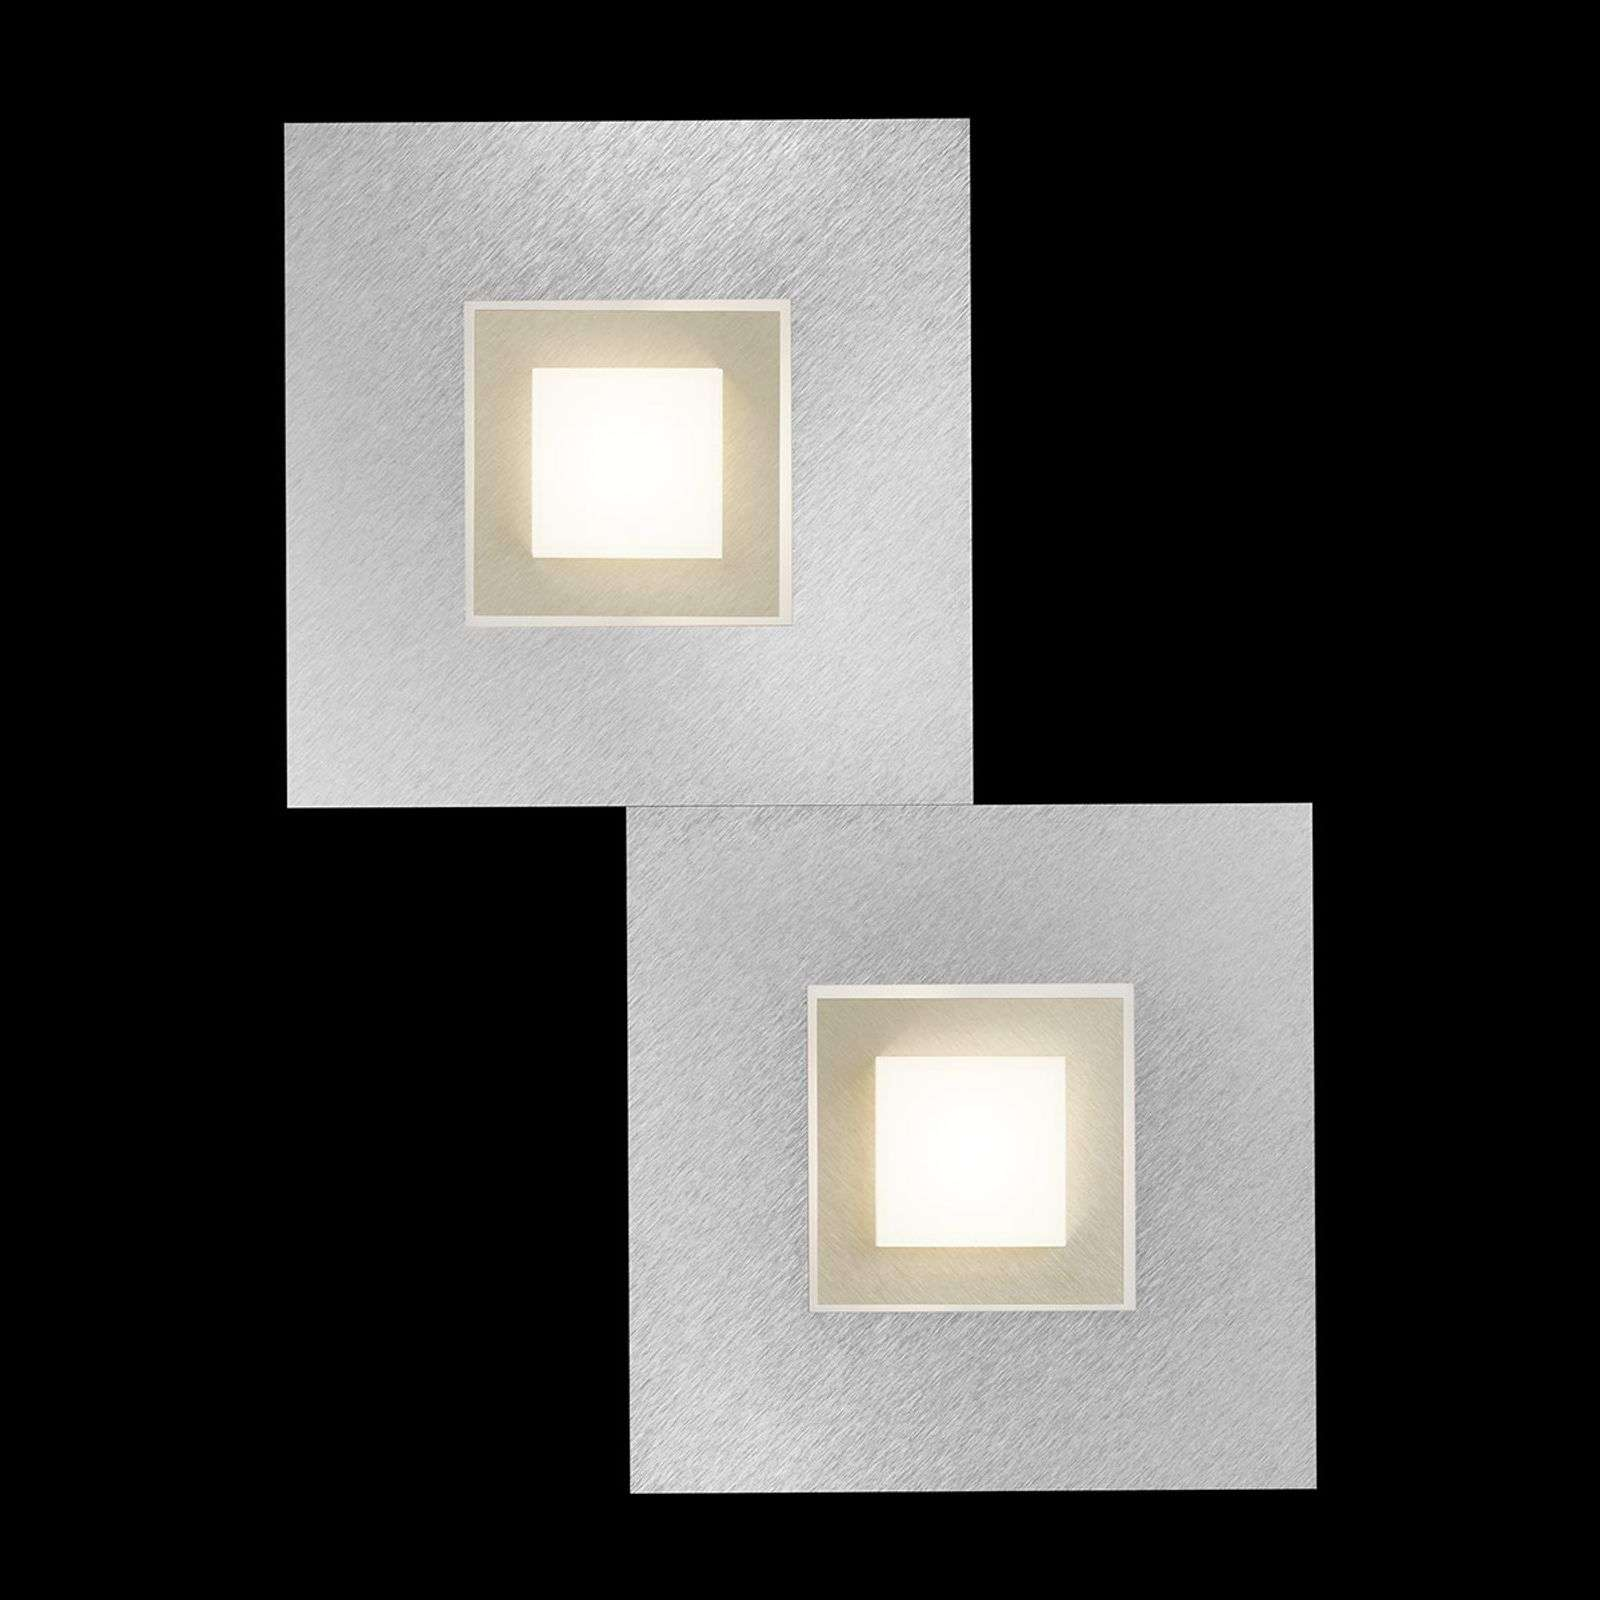 GROSSMANN Karree applique a LED a 2 luci champagne